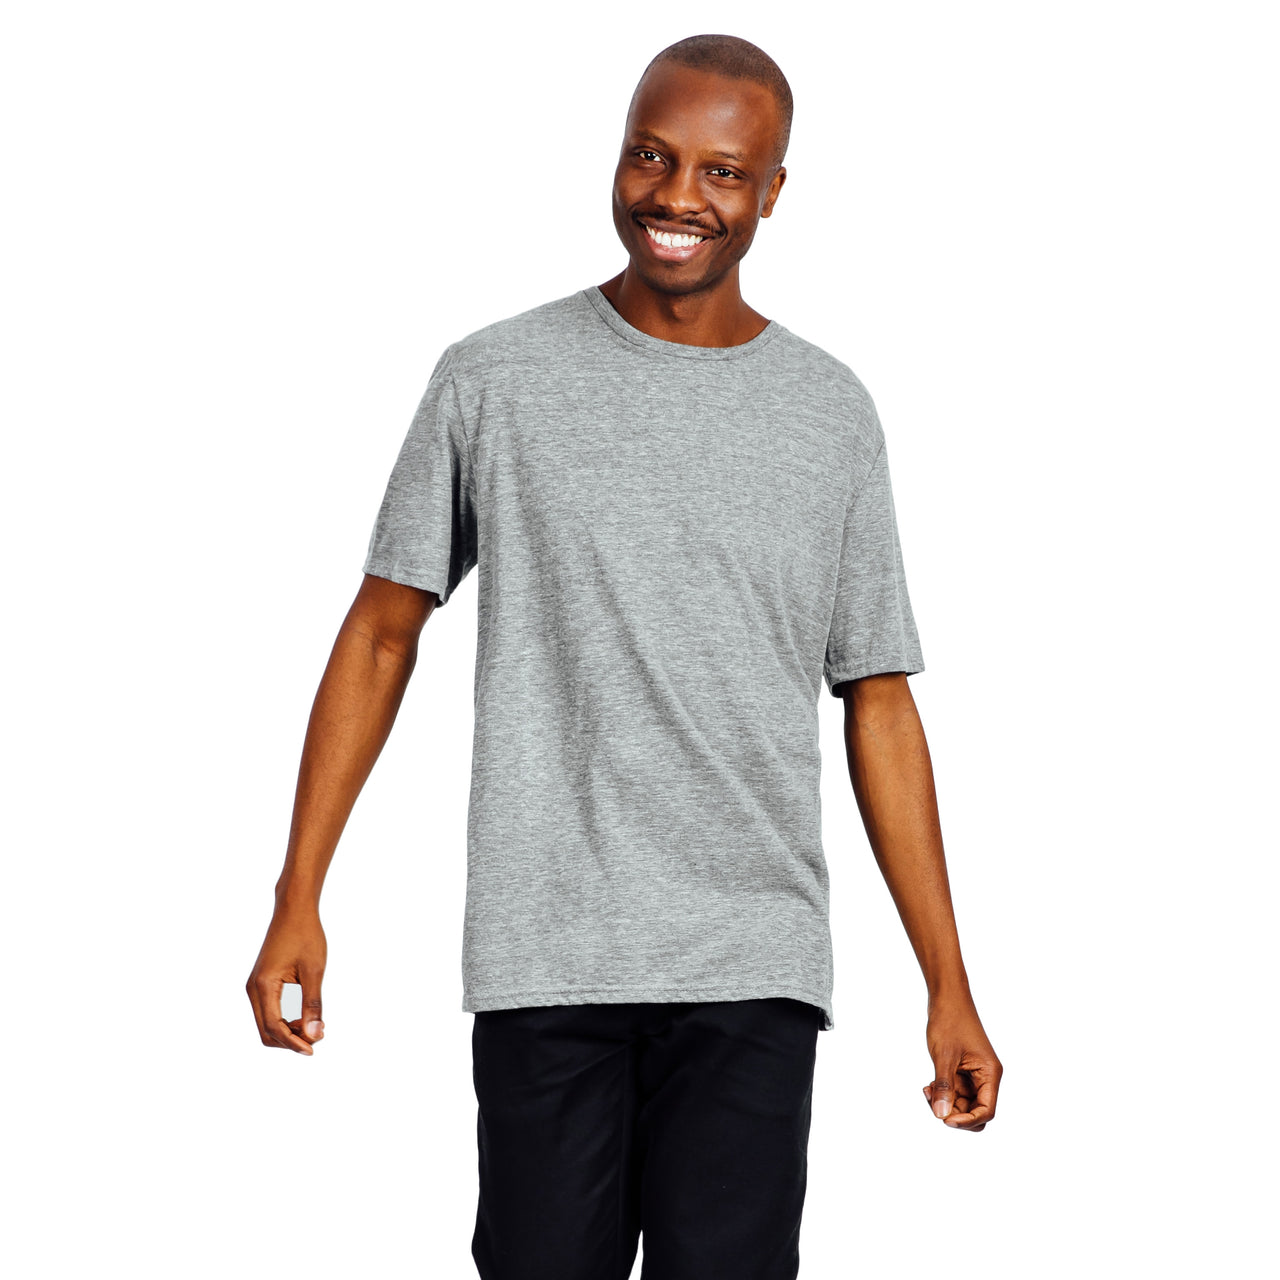 Men's Relaxed Fit Tee - Grey Mix